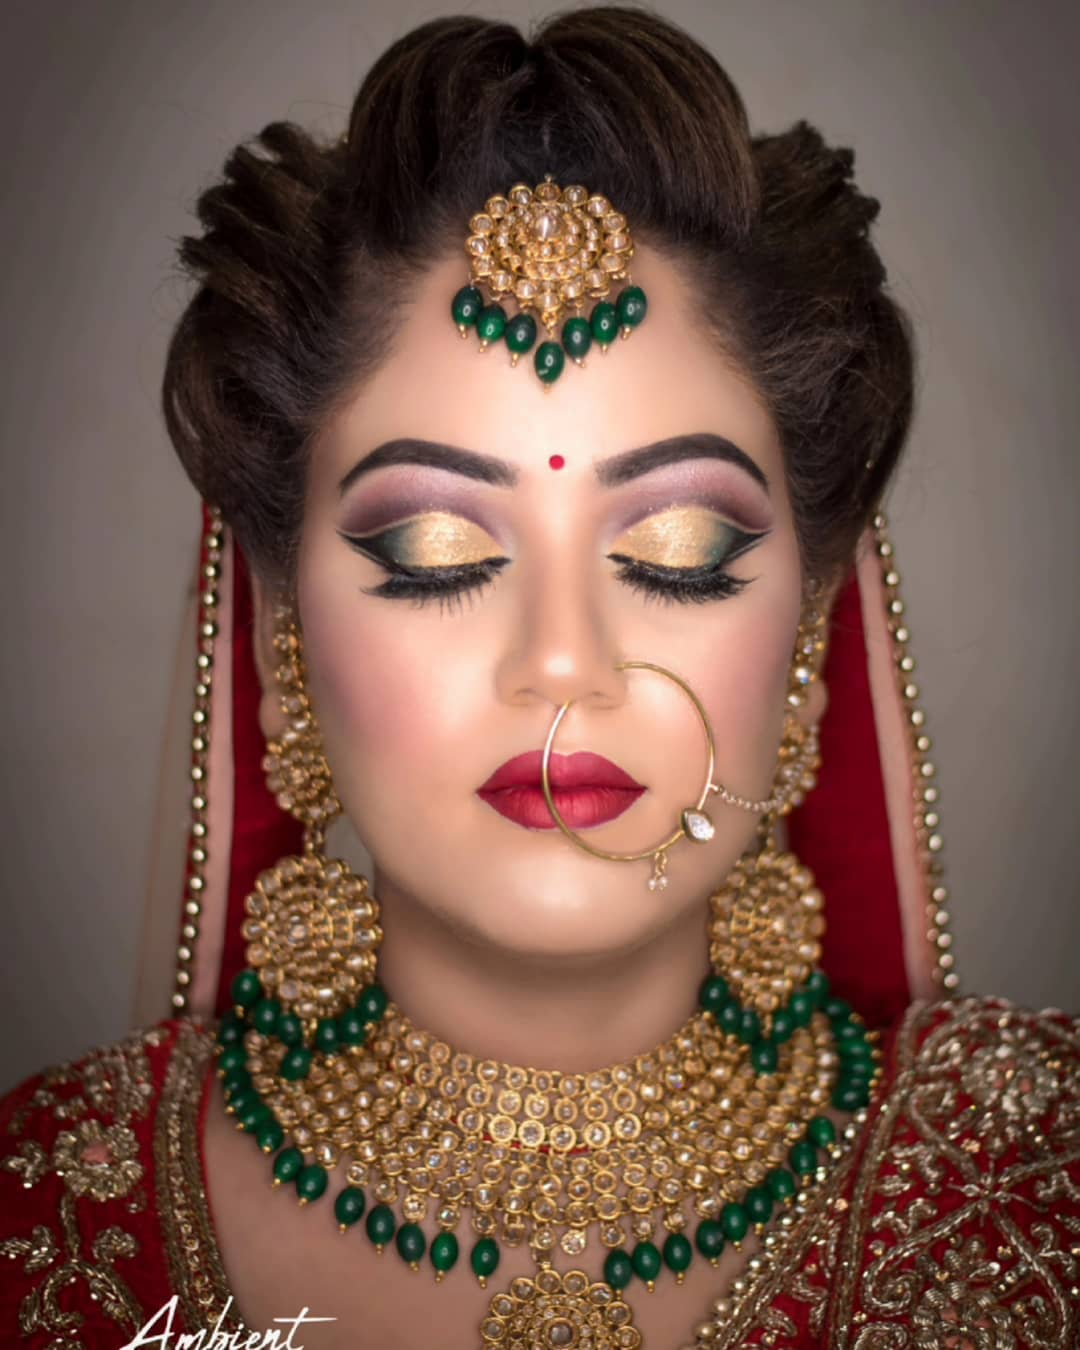 Gold toned smoky eyes & natural beauty in bridal makeup with jewellery, stylish hairstyles free images download hd